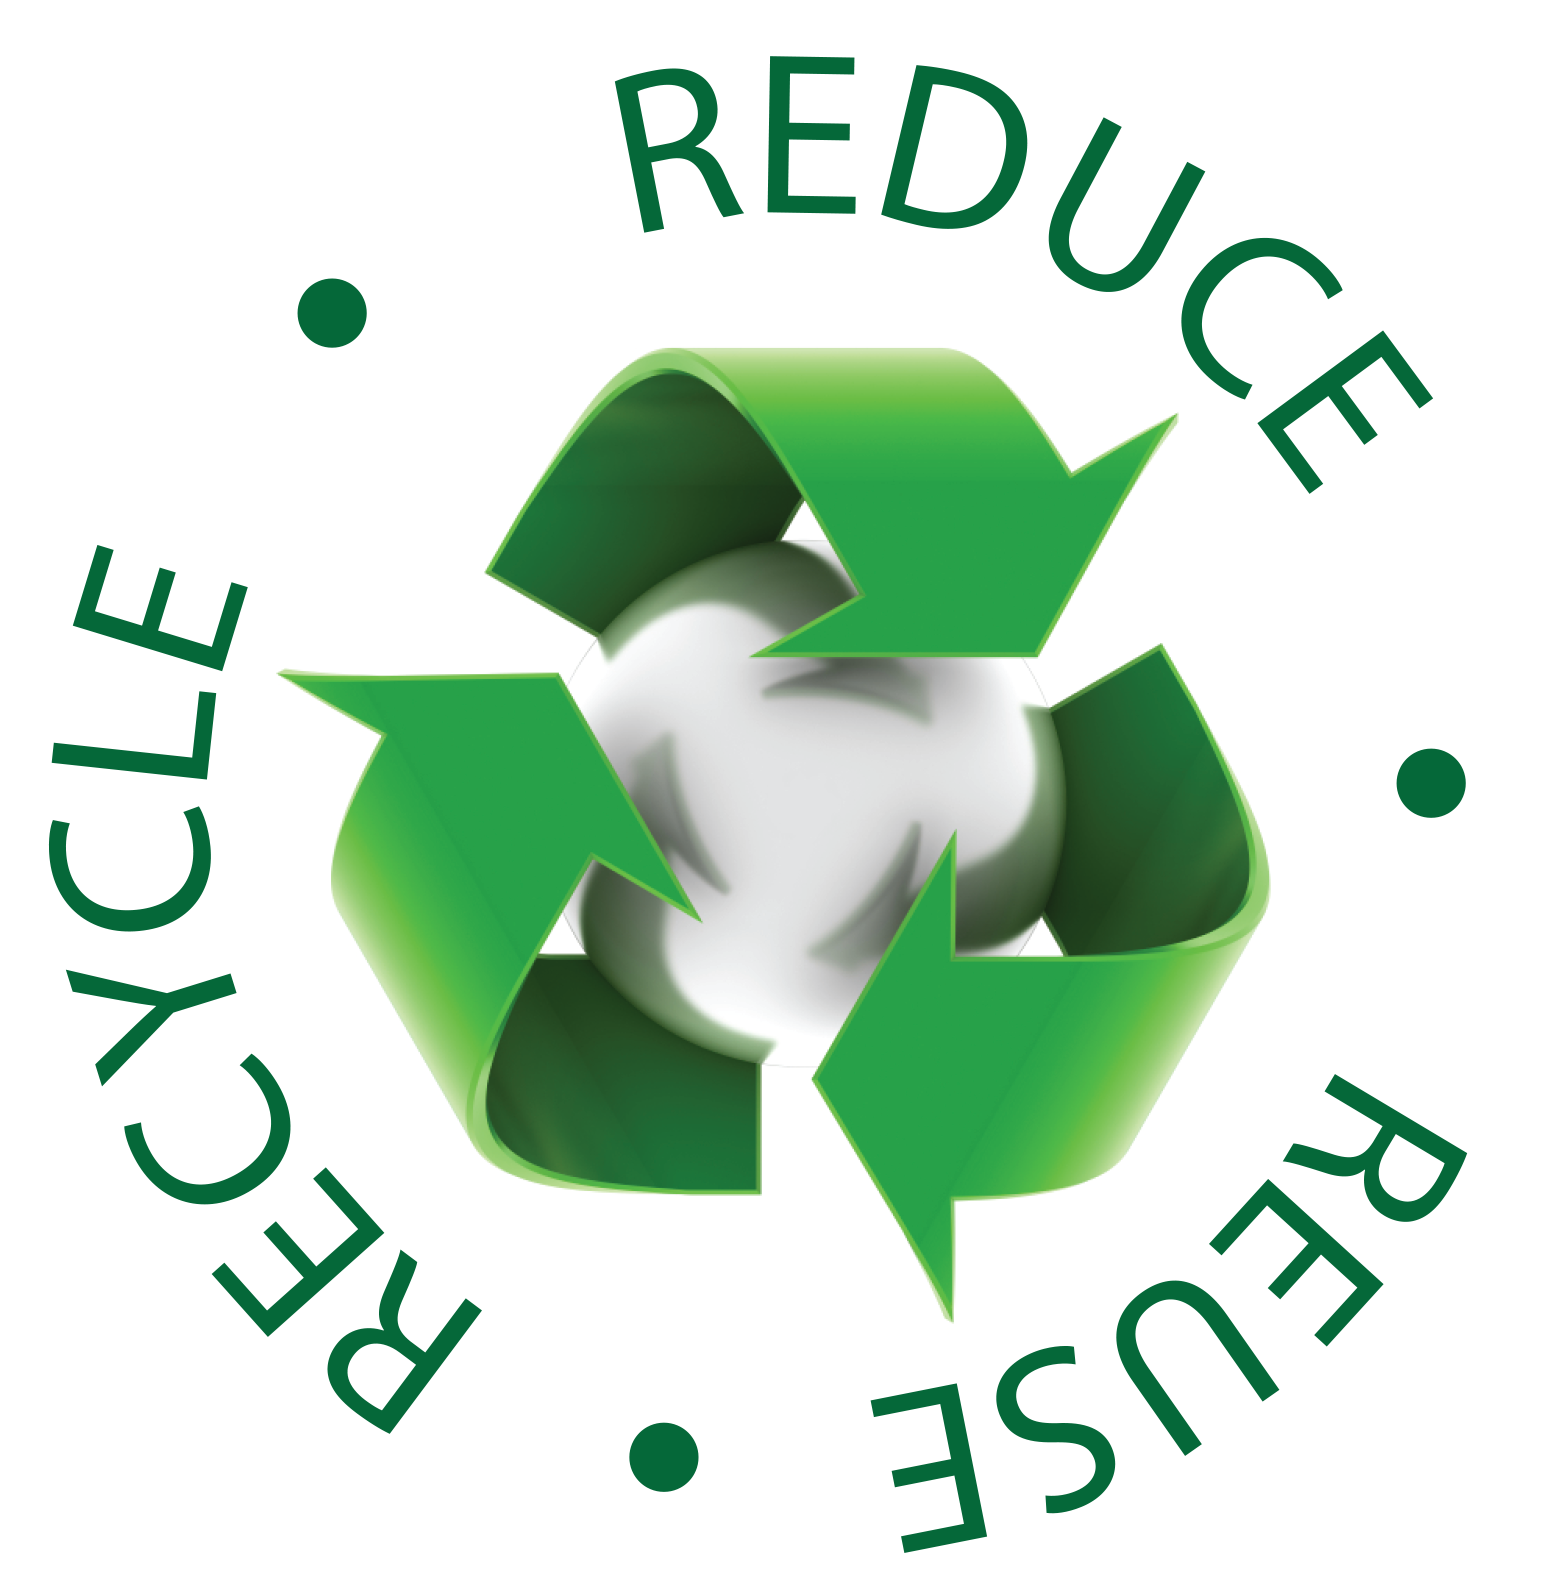 essay on recycle reuse reduce 06012017 reduce, reuse, recycle reduce waste you can save money and reduce waste by keeping these items longer and repairing them when they break.